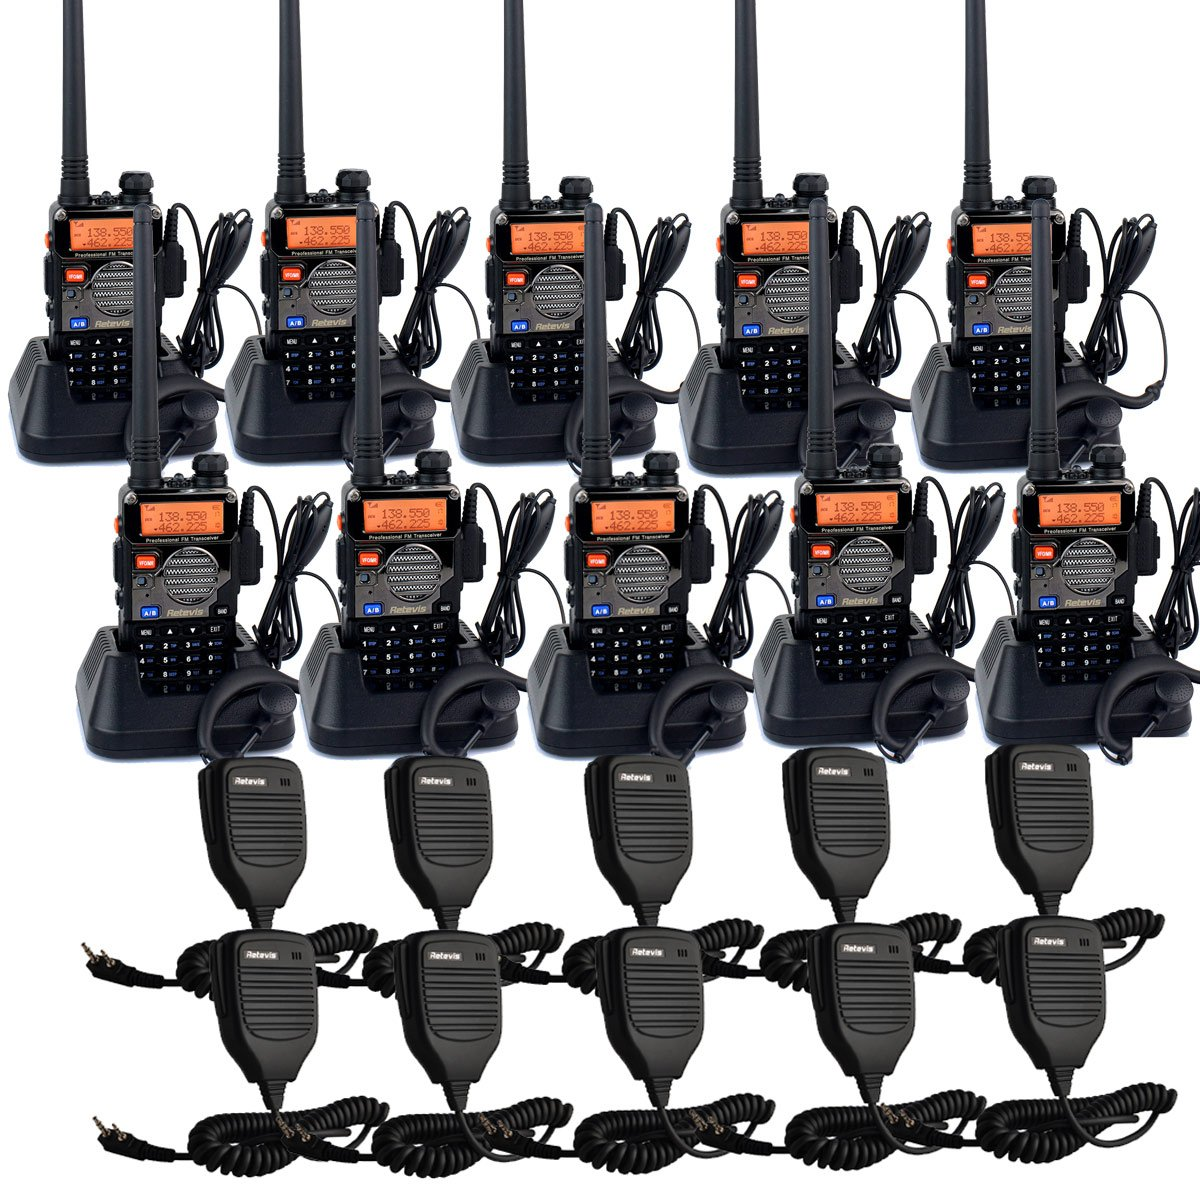 Retevis RT-5RV Walkie Talkies 5W 128CH Dual Band VHF/UHF 136-174/400-520 MHz VOX CTCSS/DCS FM Ham Radio with Earpiece (10 Pack) and Speaker Mic (10 Pack)